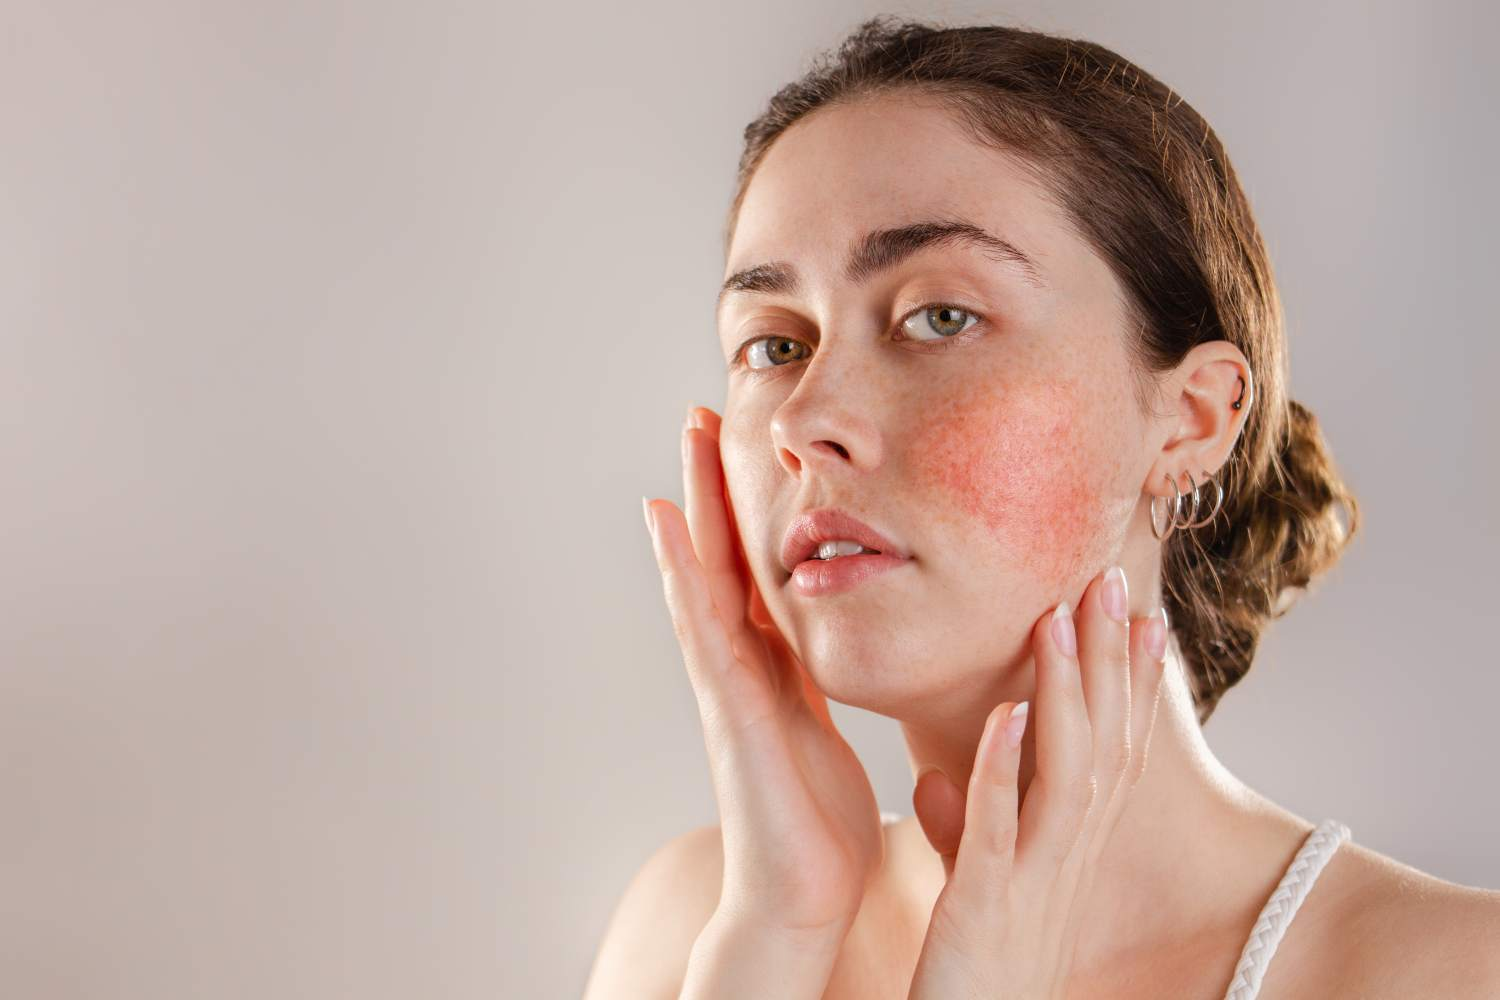 woman face with facial redness